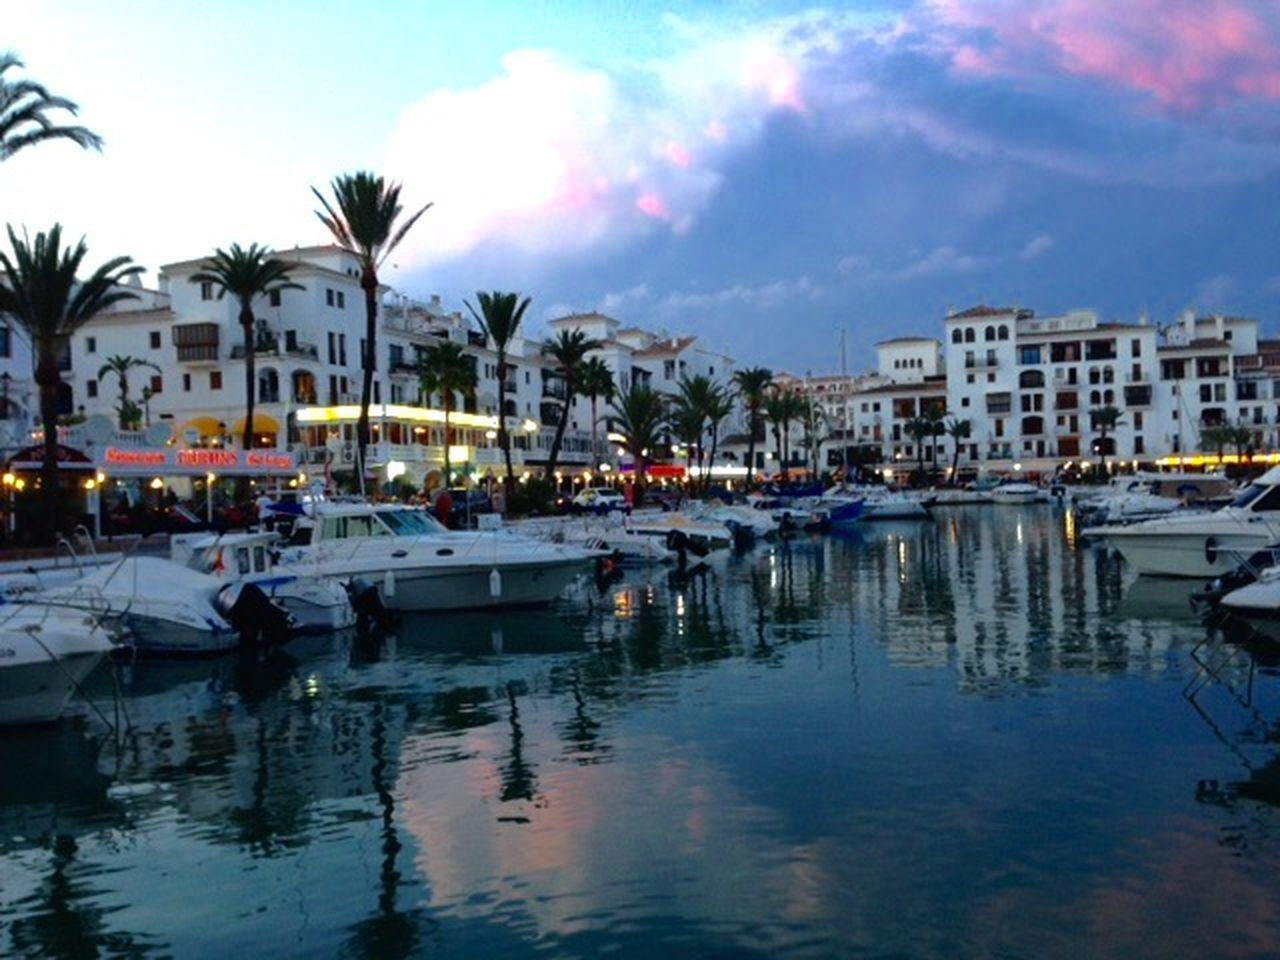 Puerto de la Duquesa marina at dusk Duquesa SPAIN Marina Dusk Water Reflections Luxury Boats Bars And Restaurants